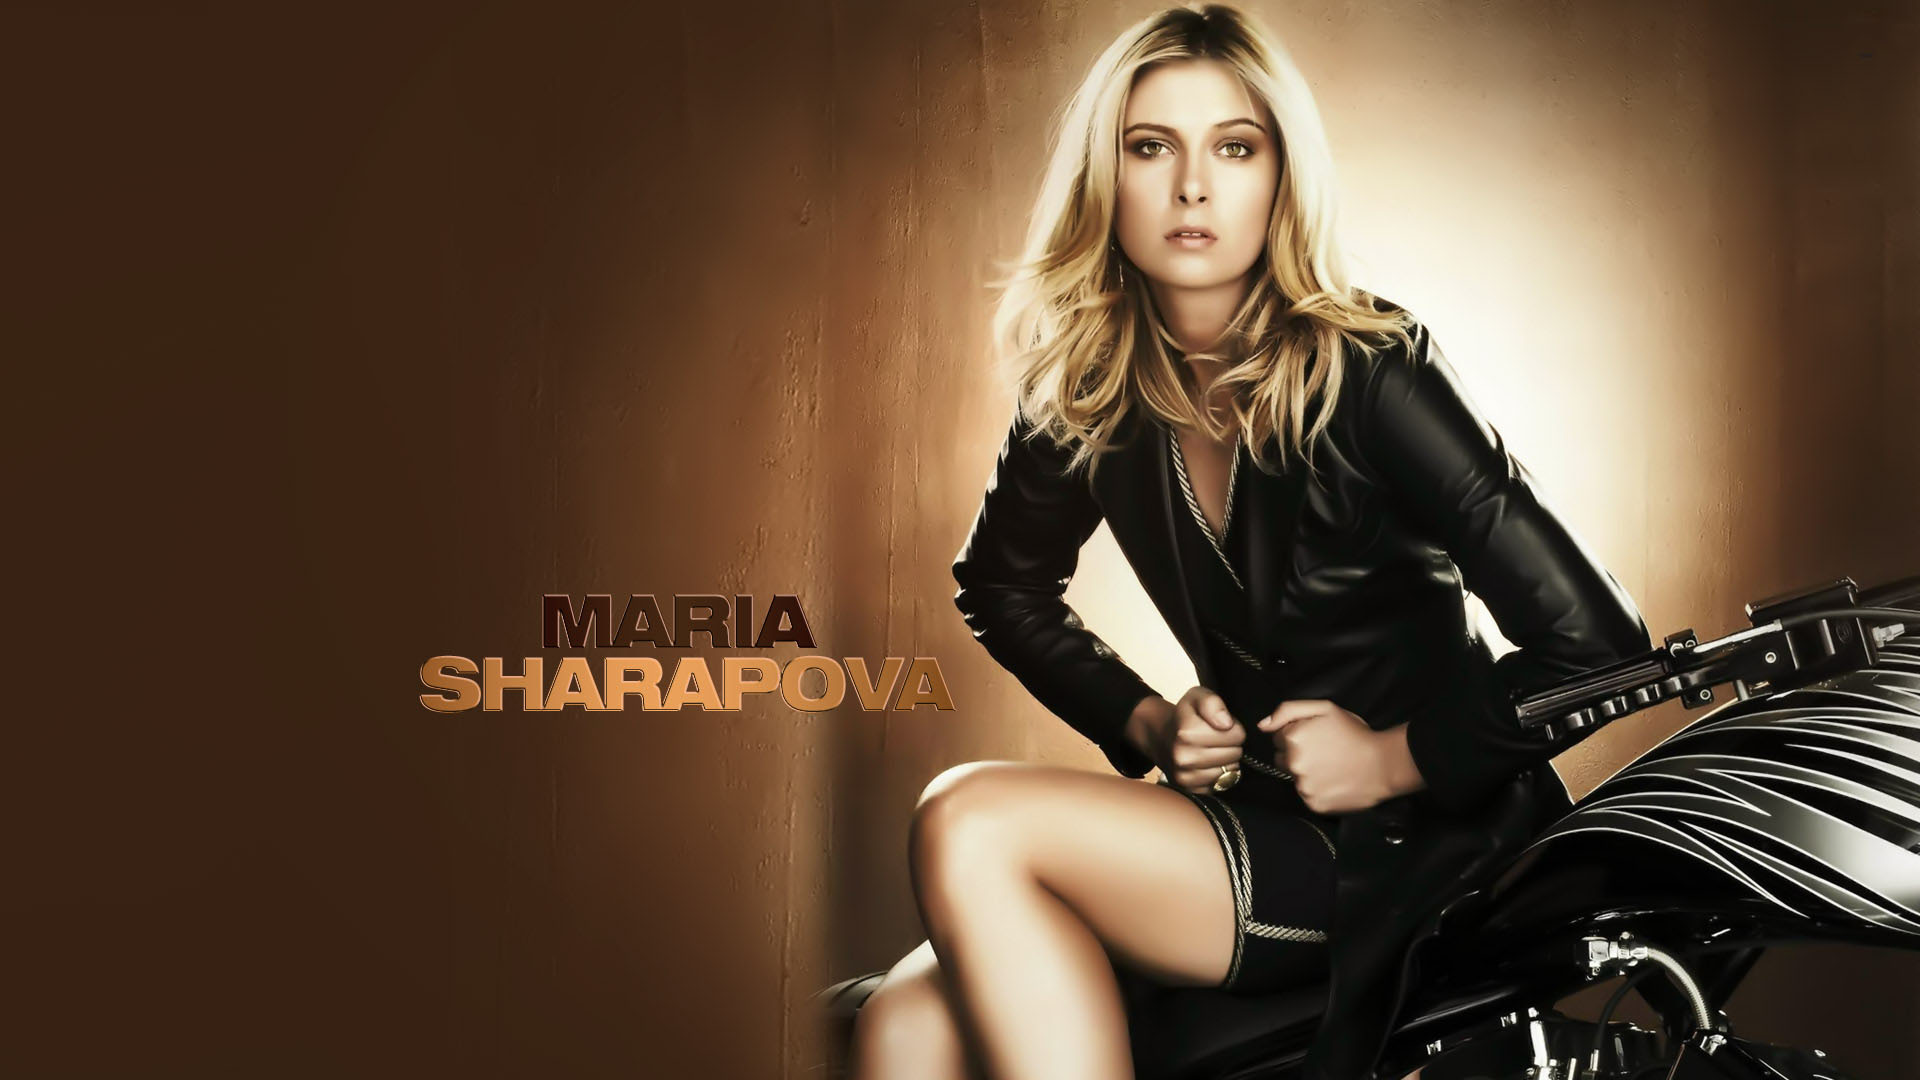 Maria Sharapova HD Wallpapers Backgrounds Wallpaper